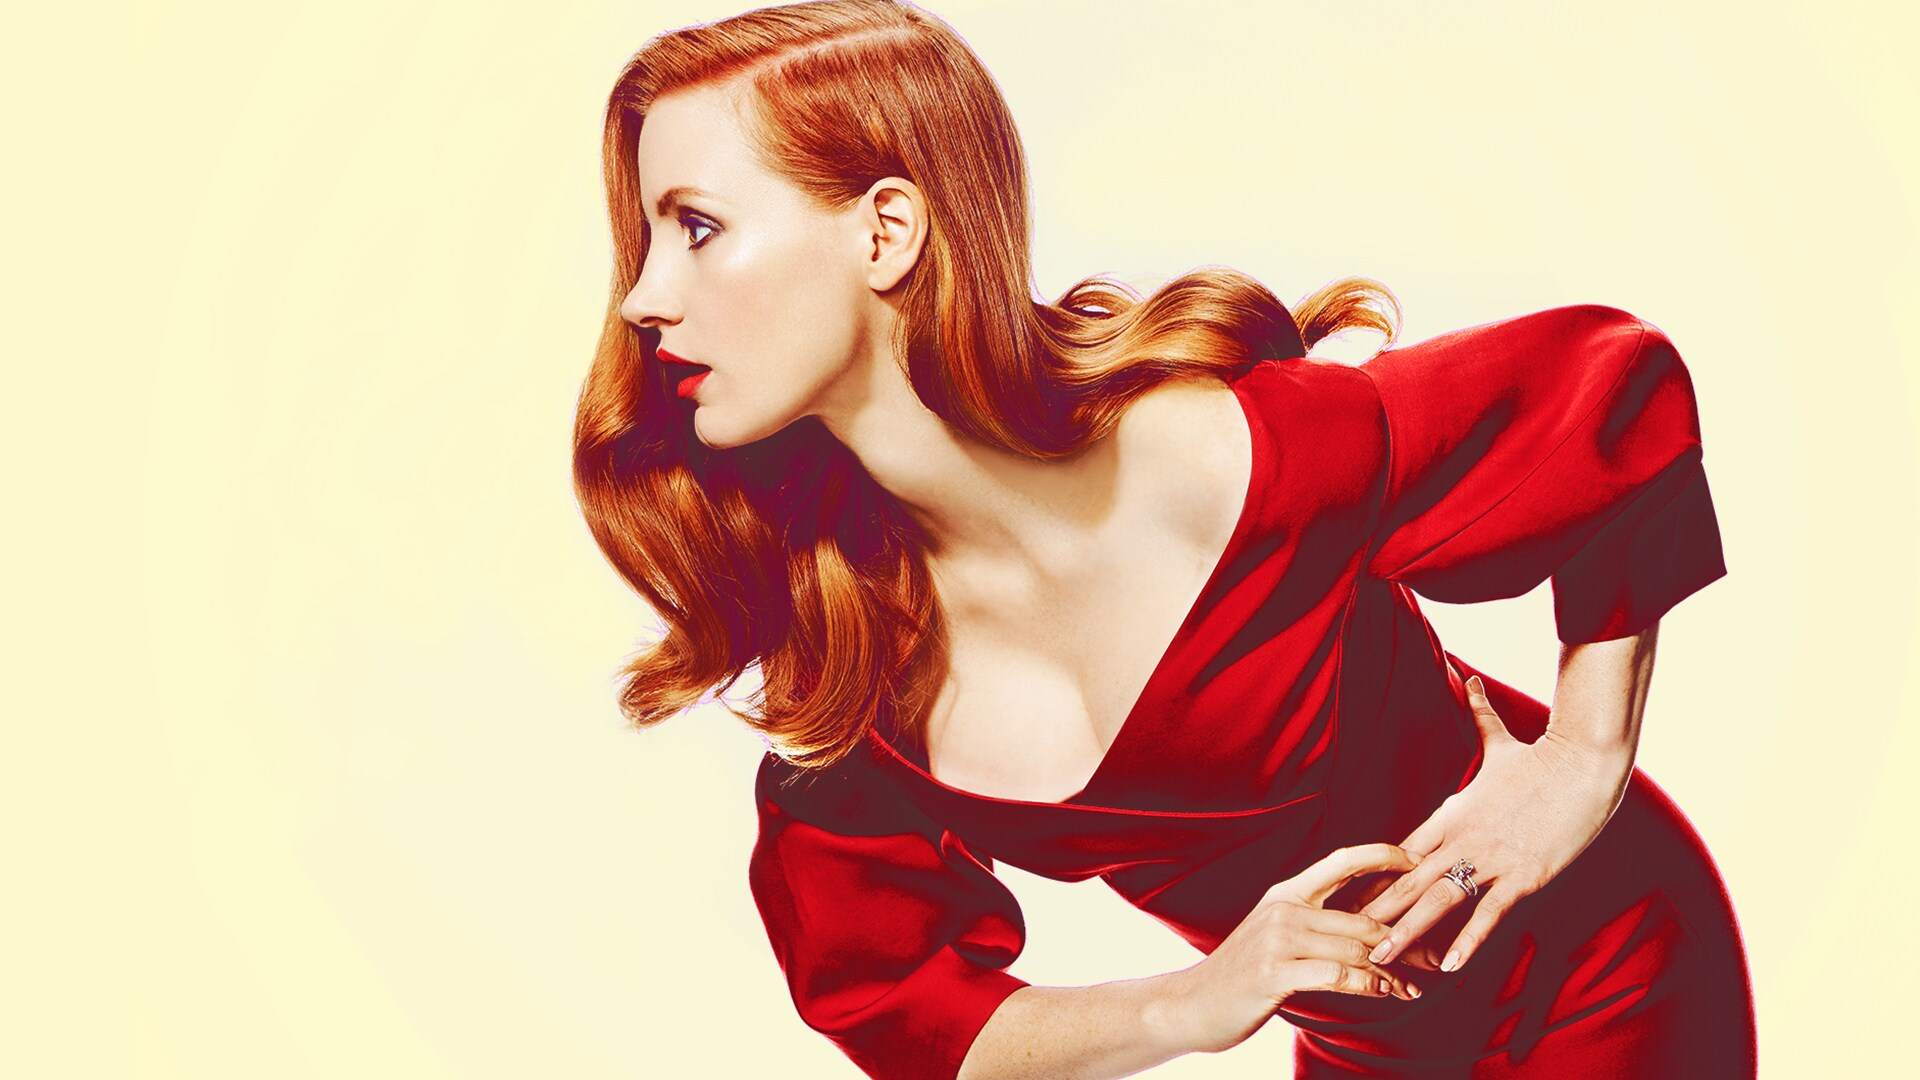 Jessica Chastain: January 20, 2018